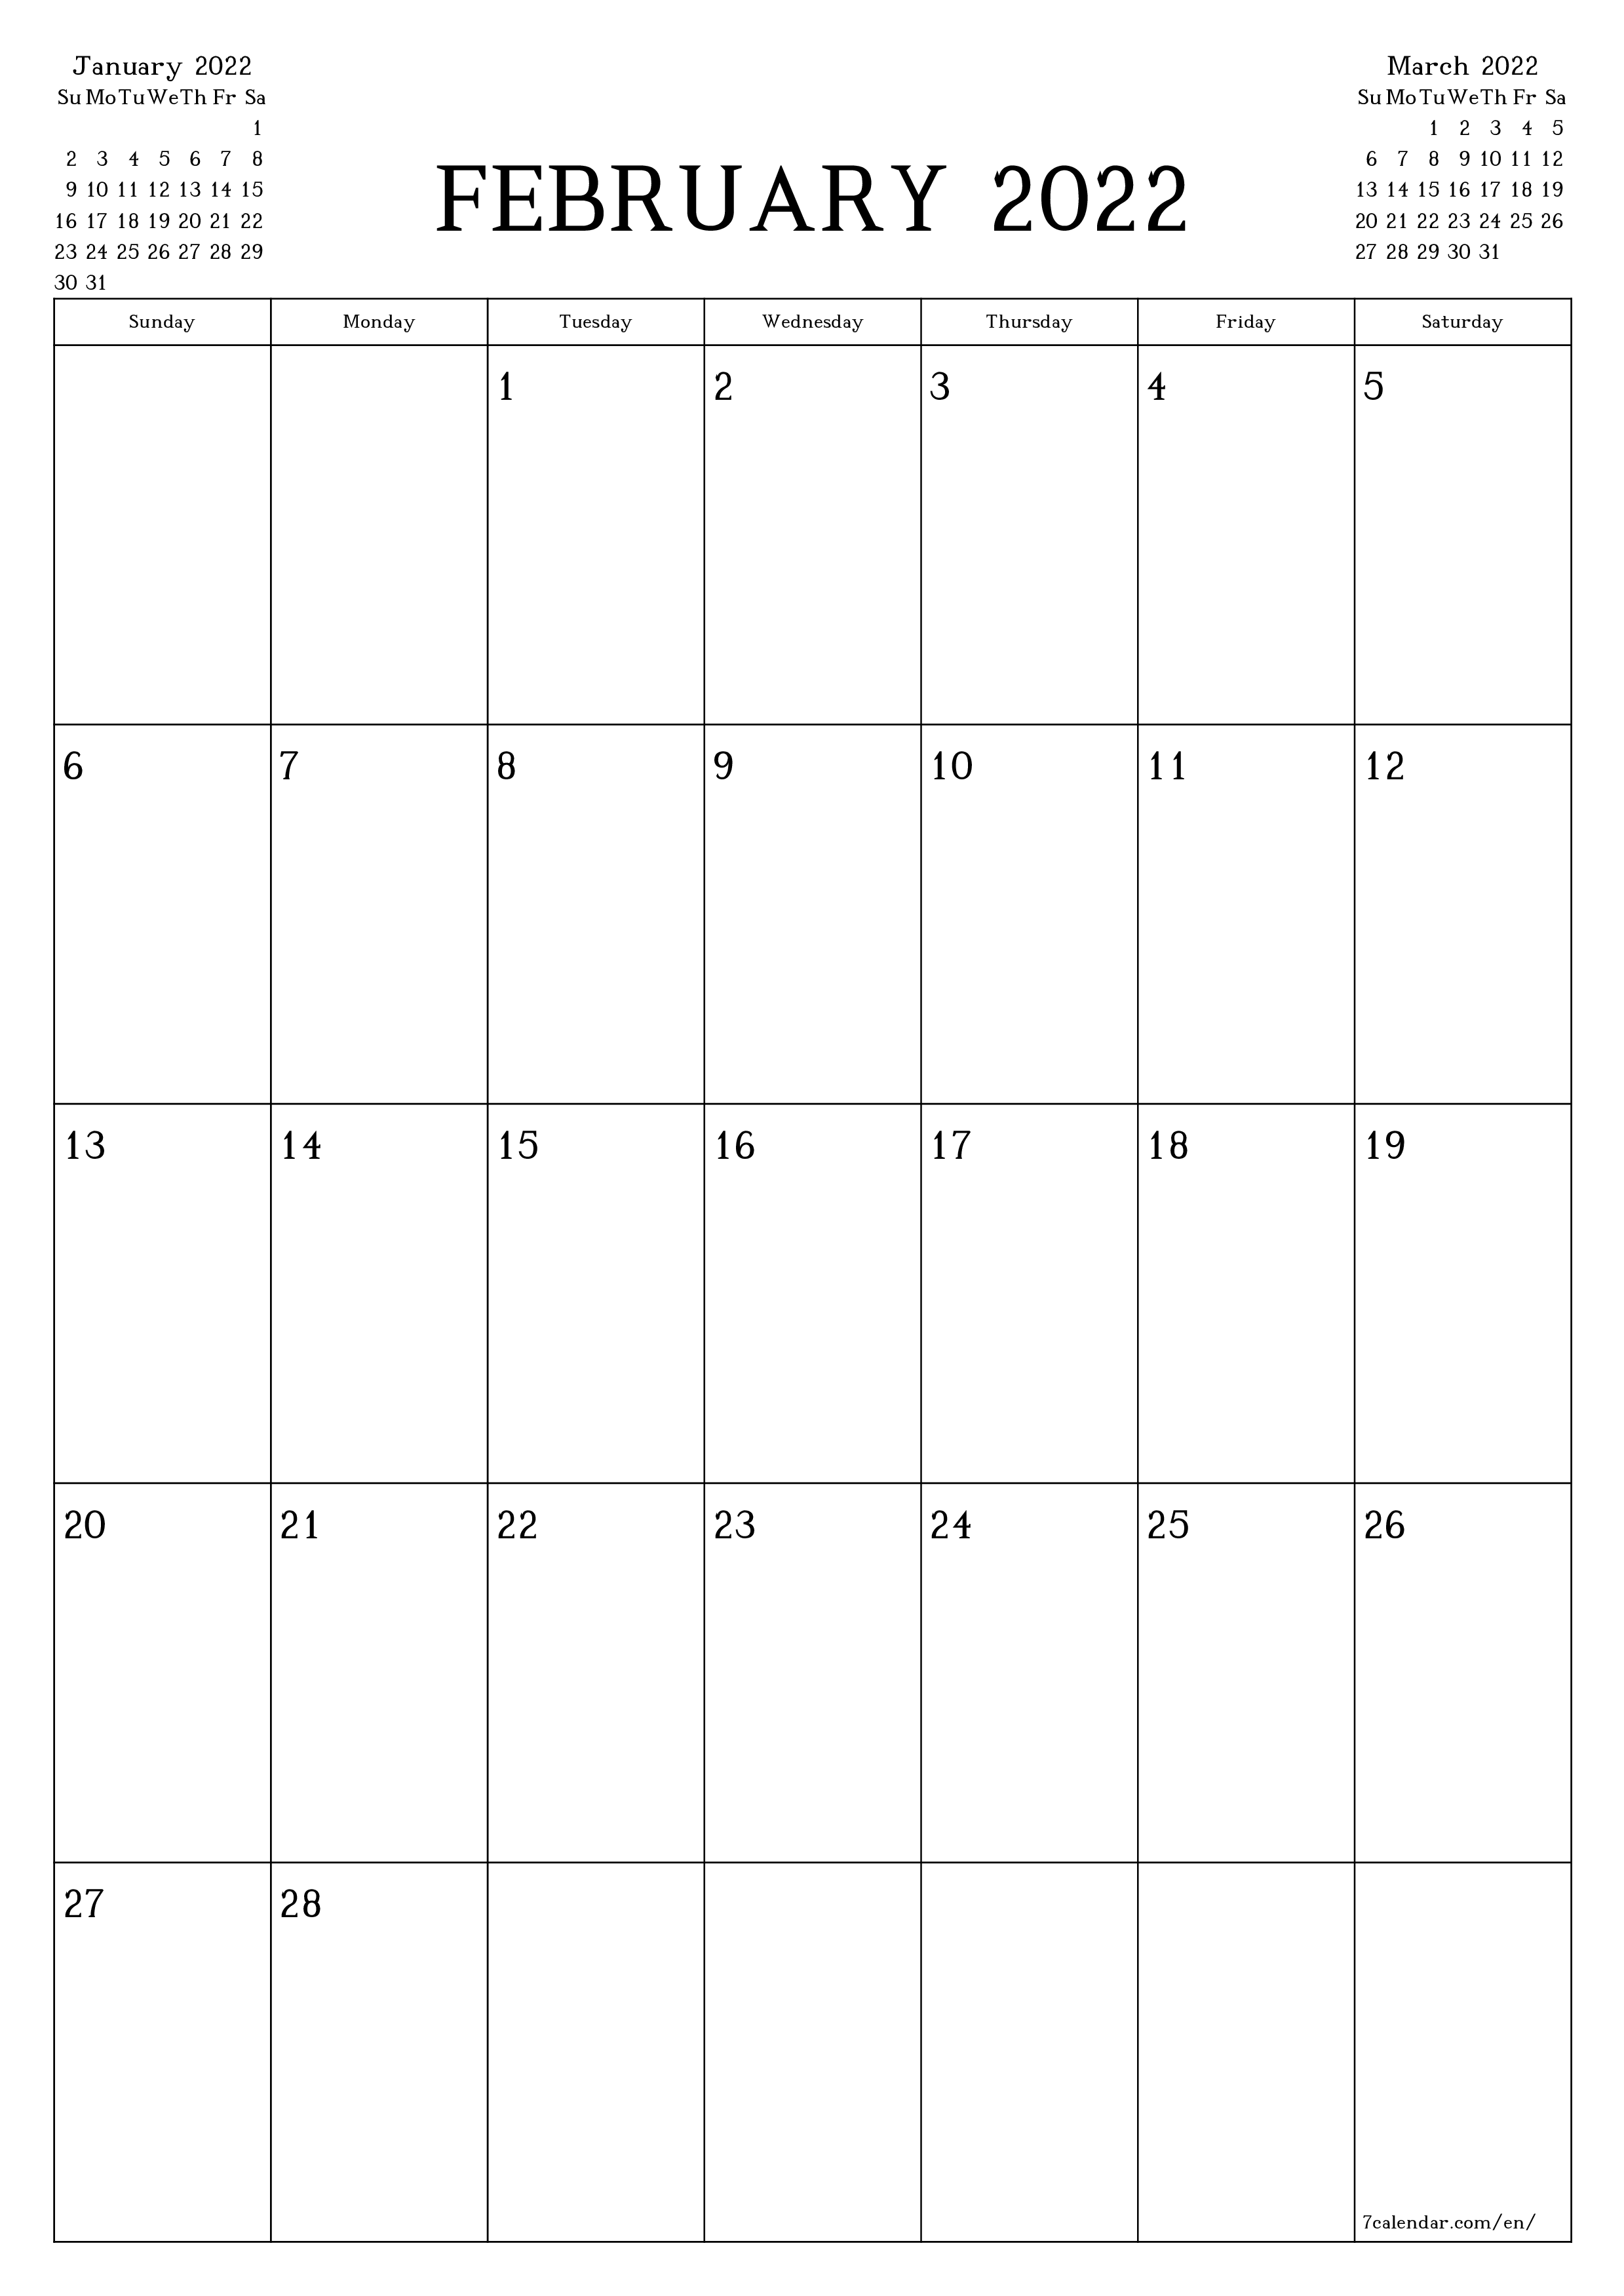 Blank monthly calendar planner for month February 2022 with notes save and print to PDF  - 7calendar.com